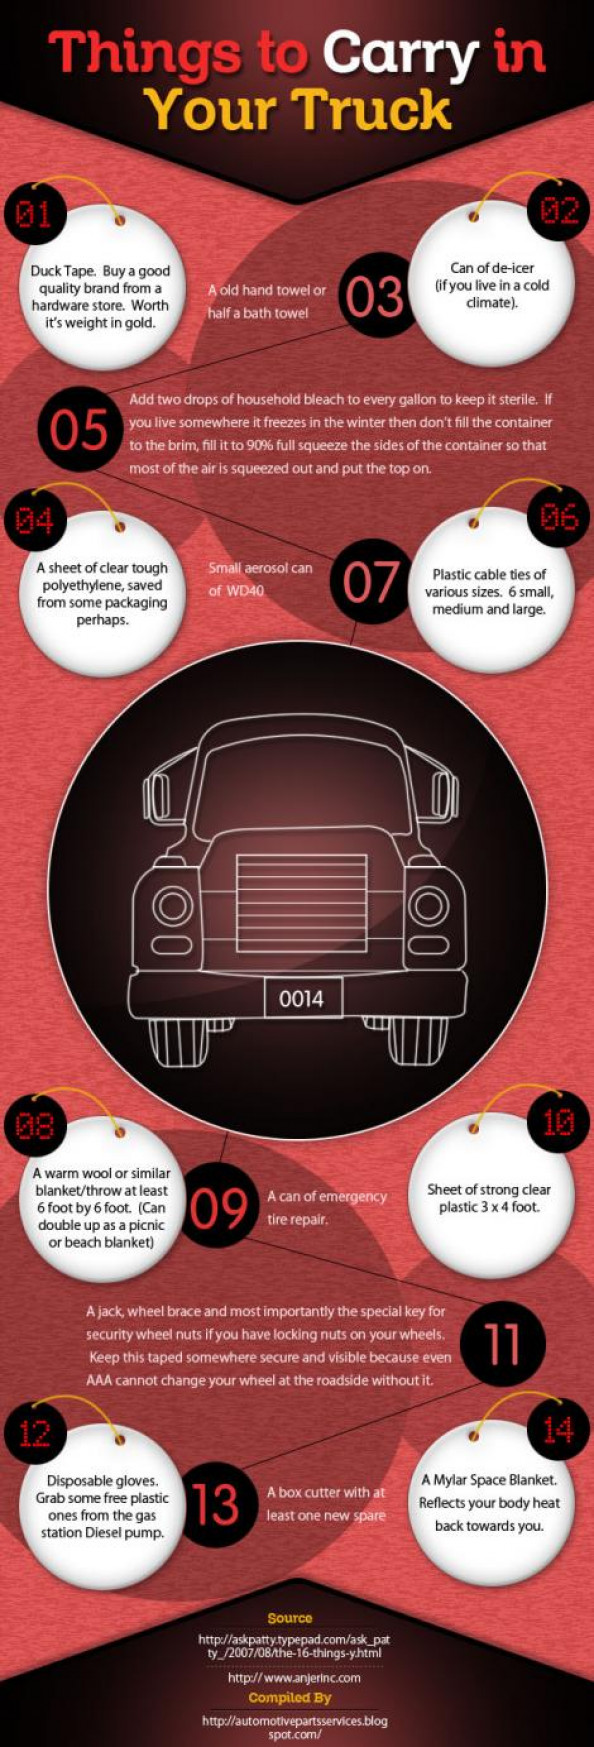 Things To Carry In Your Truck Infographic